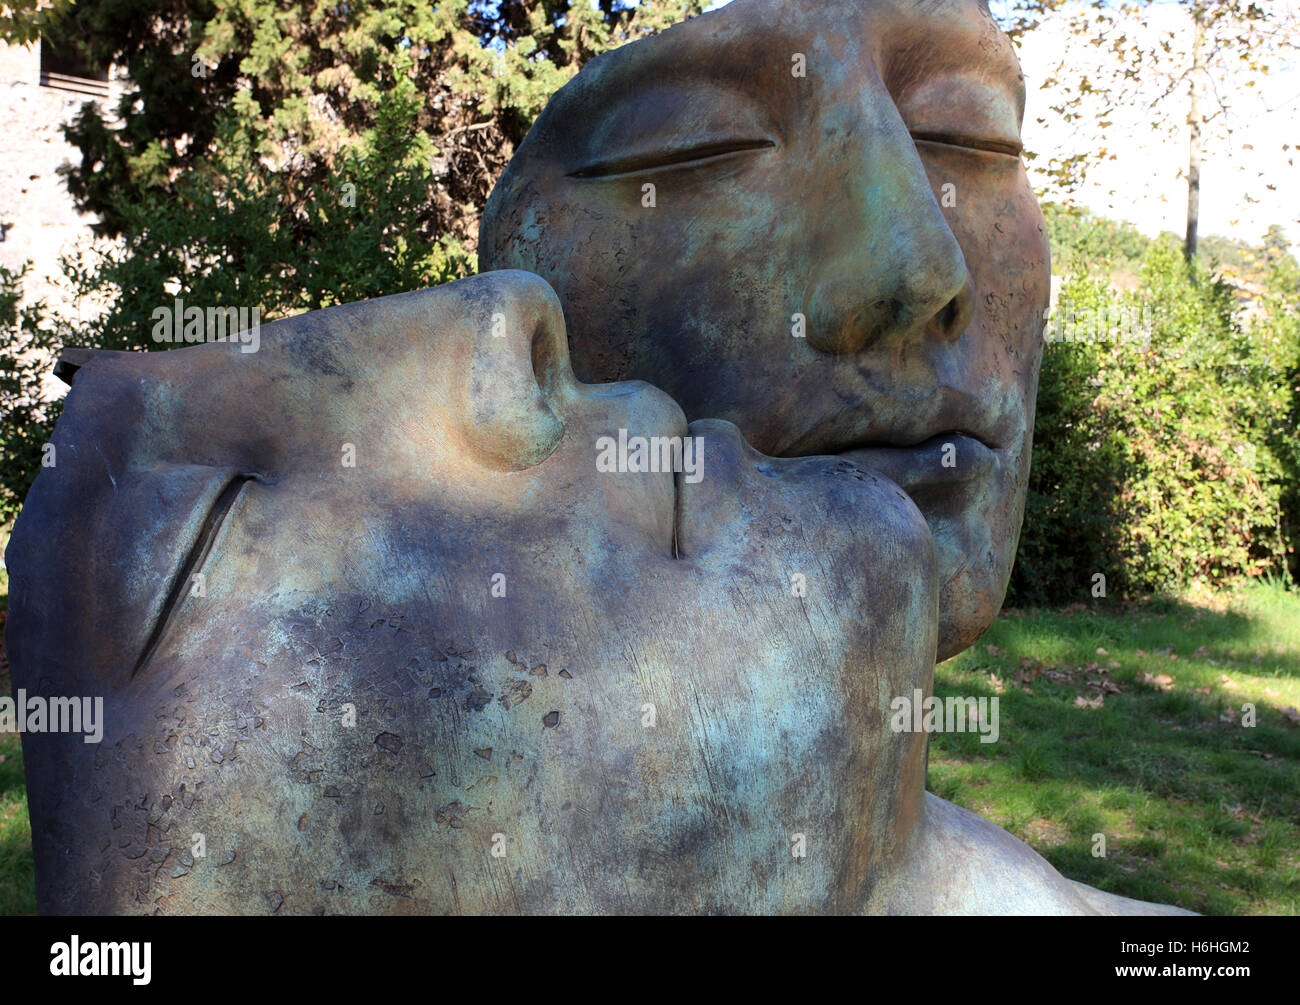 Modern sculptures  by Igor Mitoraj on show at the ancient site of Pompeii near Naples Italy Stock Photo